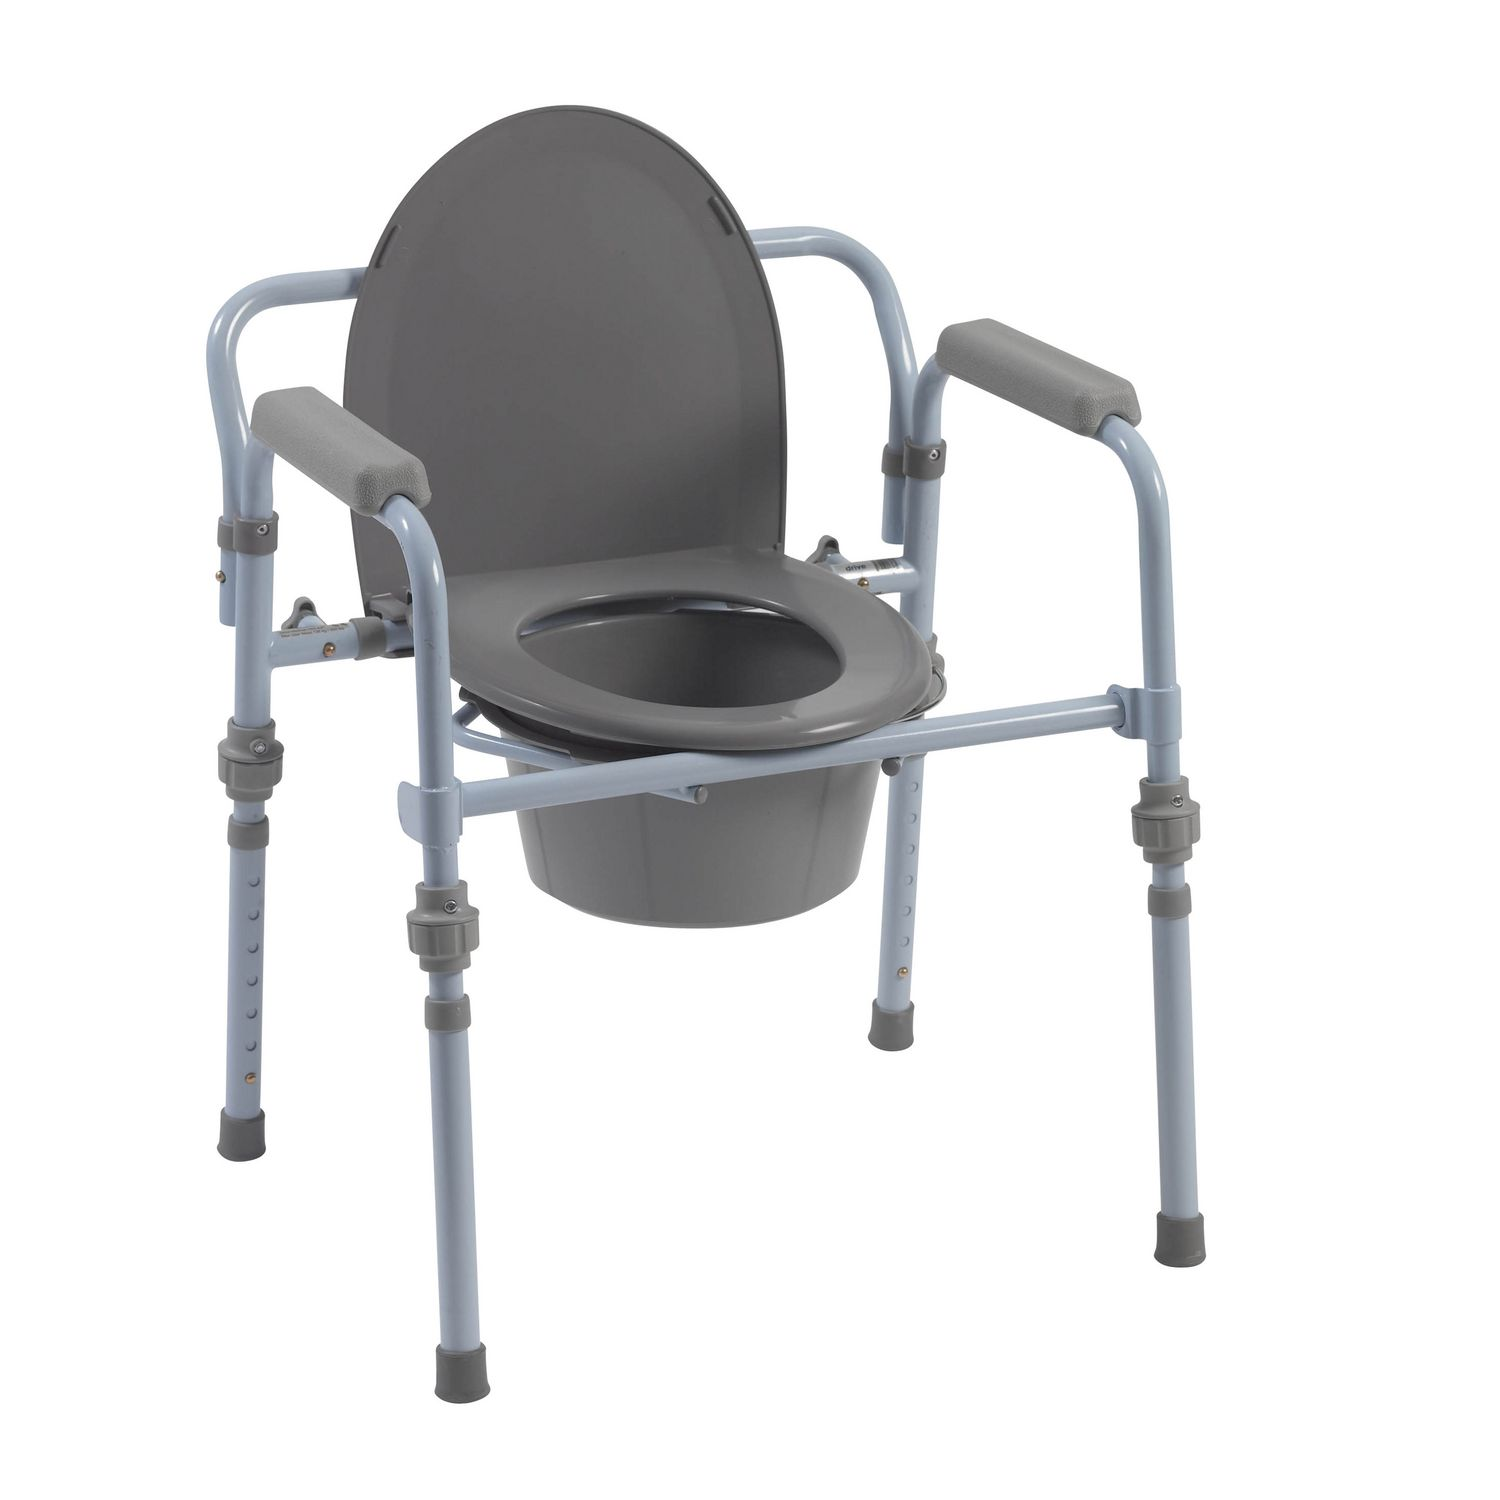 commode définition